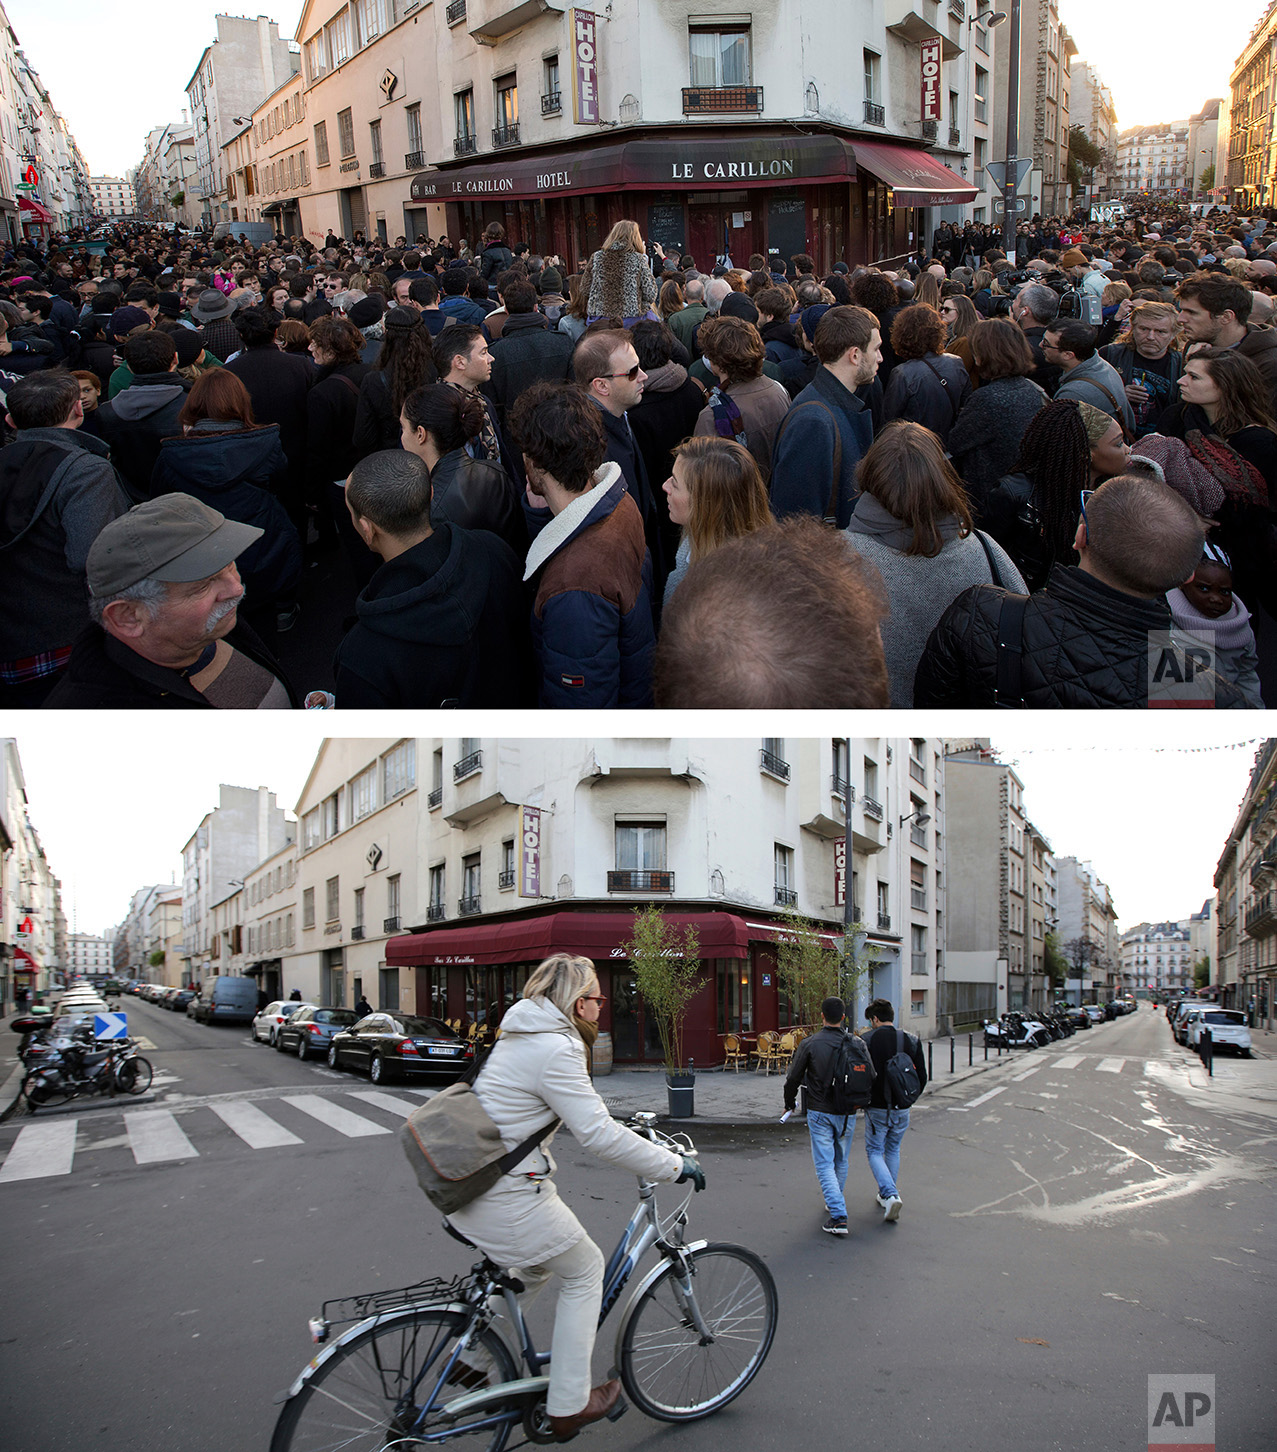 This combination of two photos shows a Sunday, Nov. 15, 2015 photo, top, of people as they pay their respects to the victims at the site of the attacks on restaurant Le Petit Cambodge (Little Cambodia) and the Carillon Hotel on the first of three days of national mourning in Paris, after the deadly attacks, and a woman cycling past the cafe, bottom, on Tuesday Nov. 8, 2016. (AP Photo/Peter Dejong, Thibault Camus)